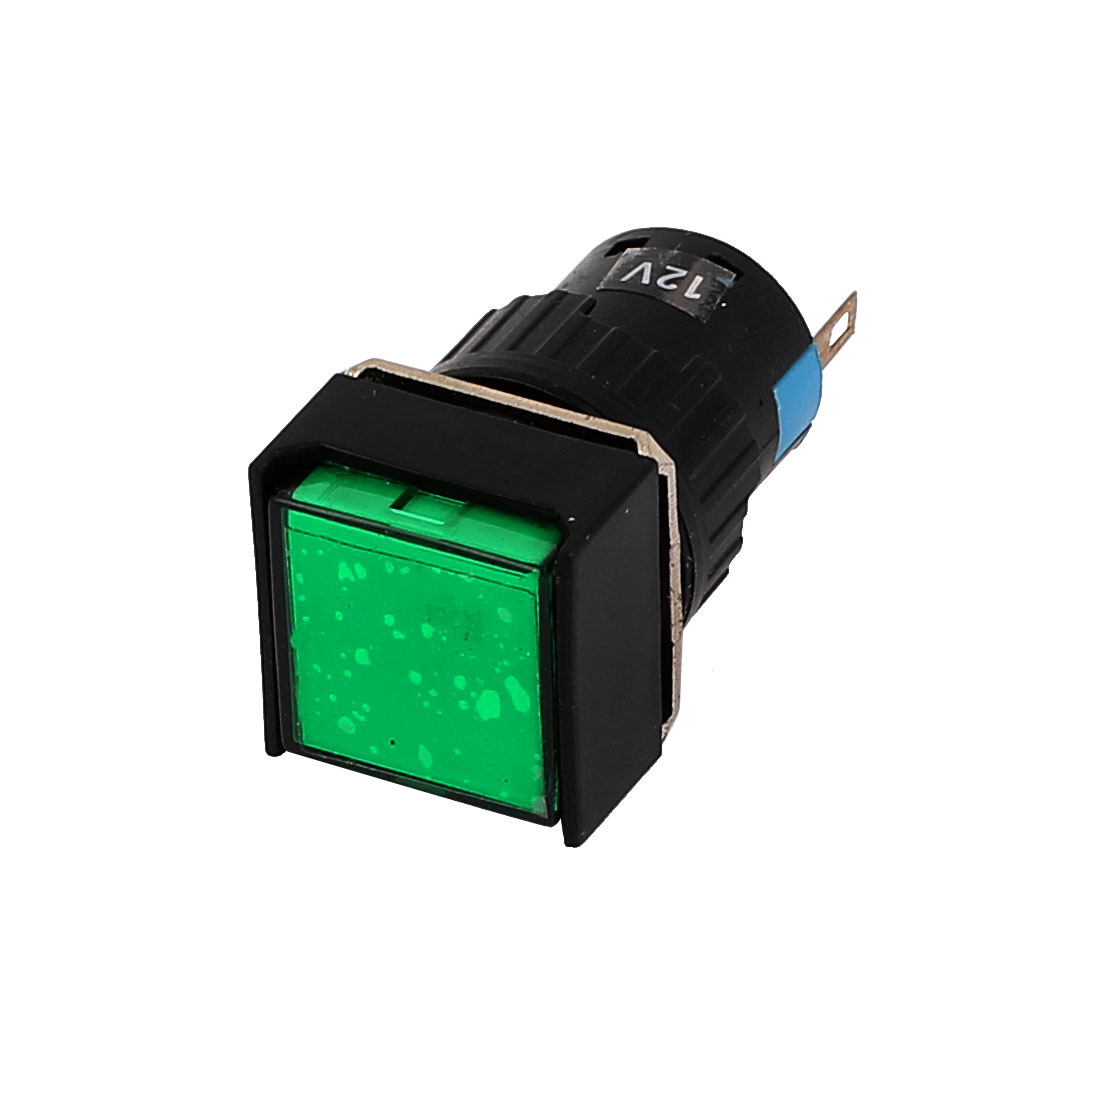 DC 12V 2 Terminals Square Plastic Cap Green LED Signal Lamp Panel Indicator Light